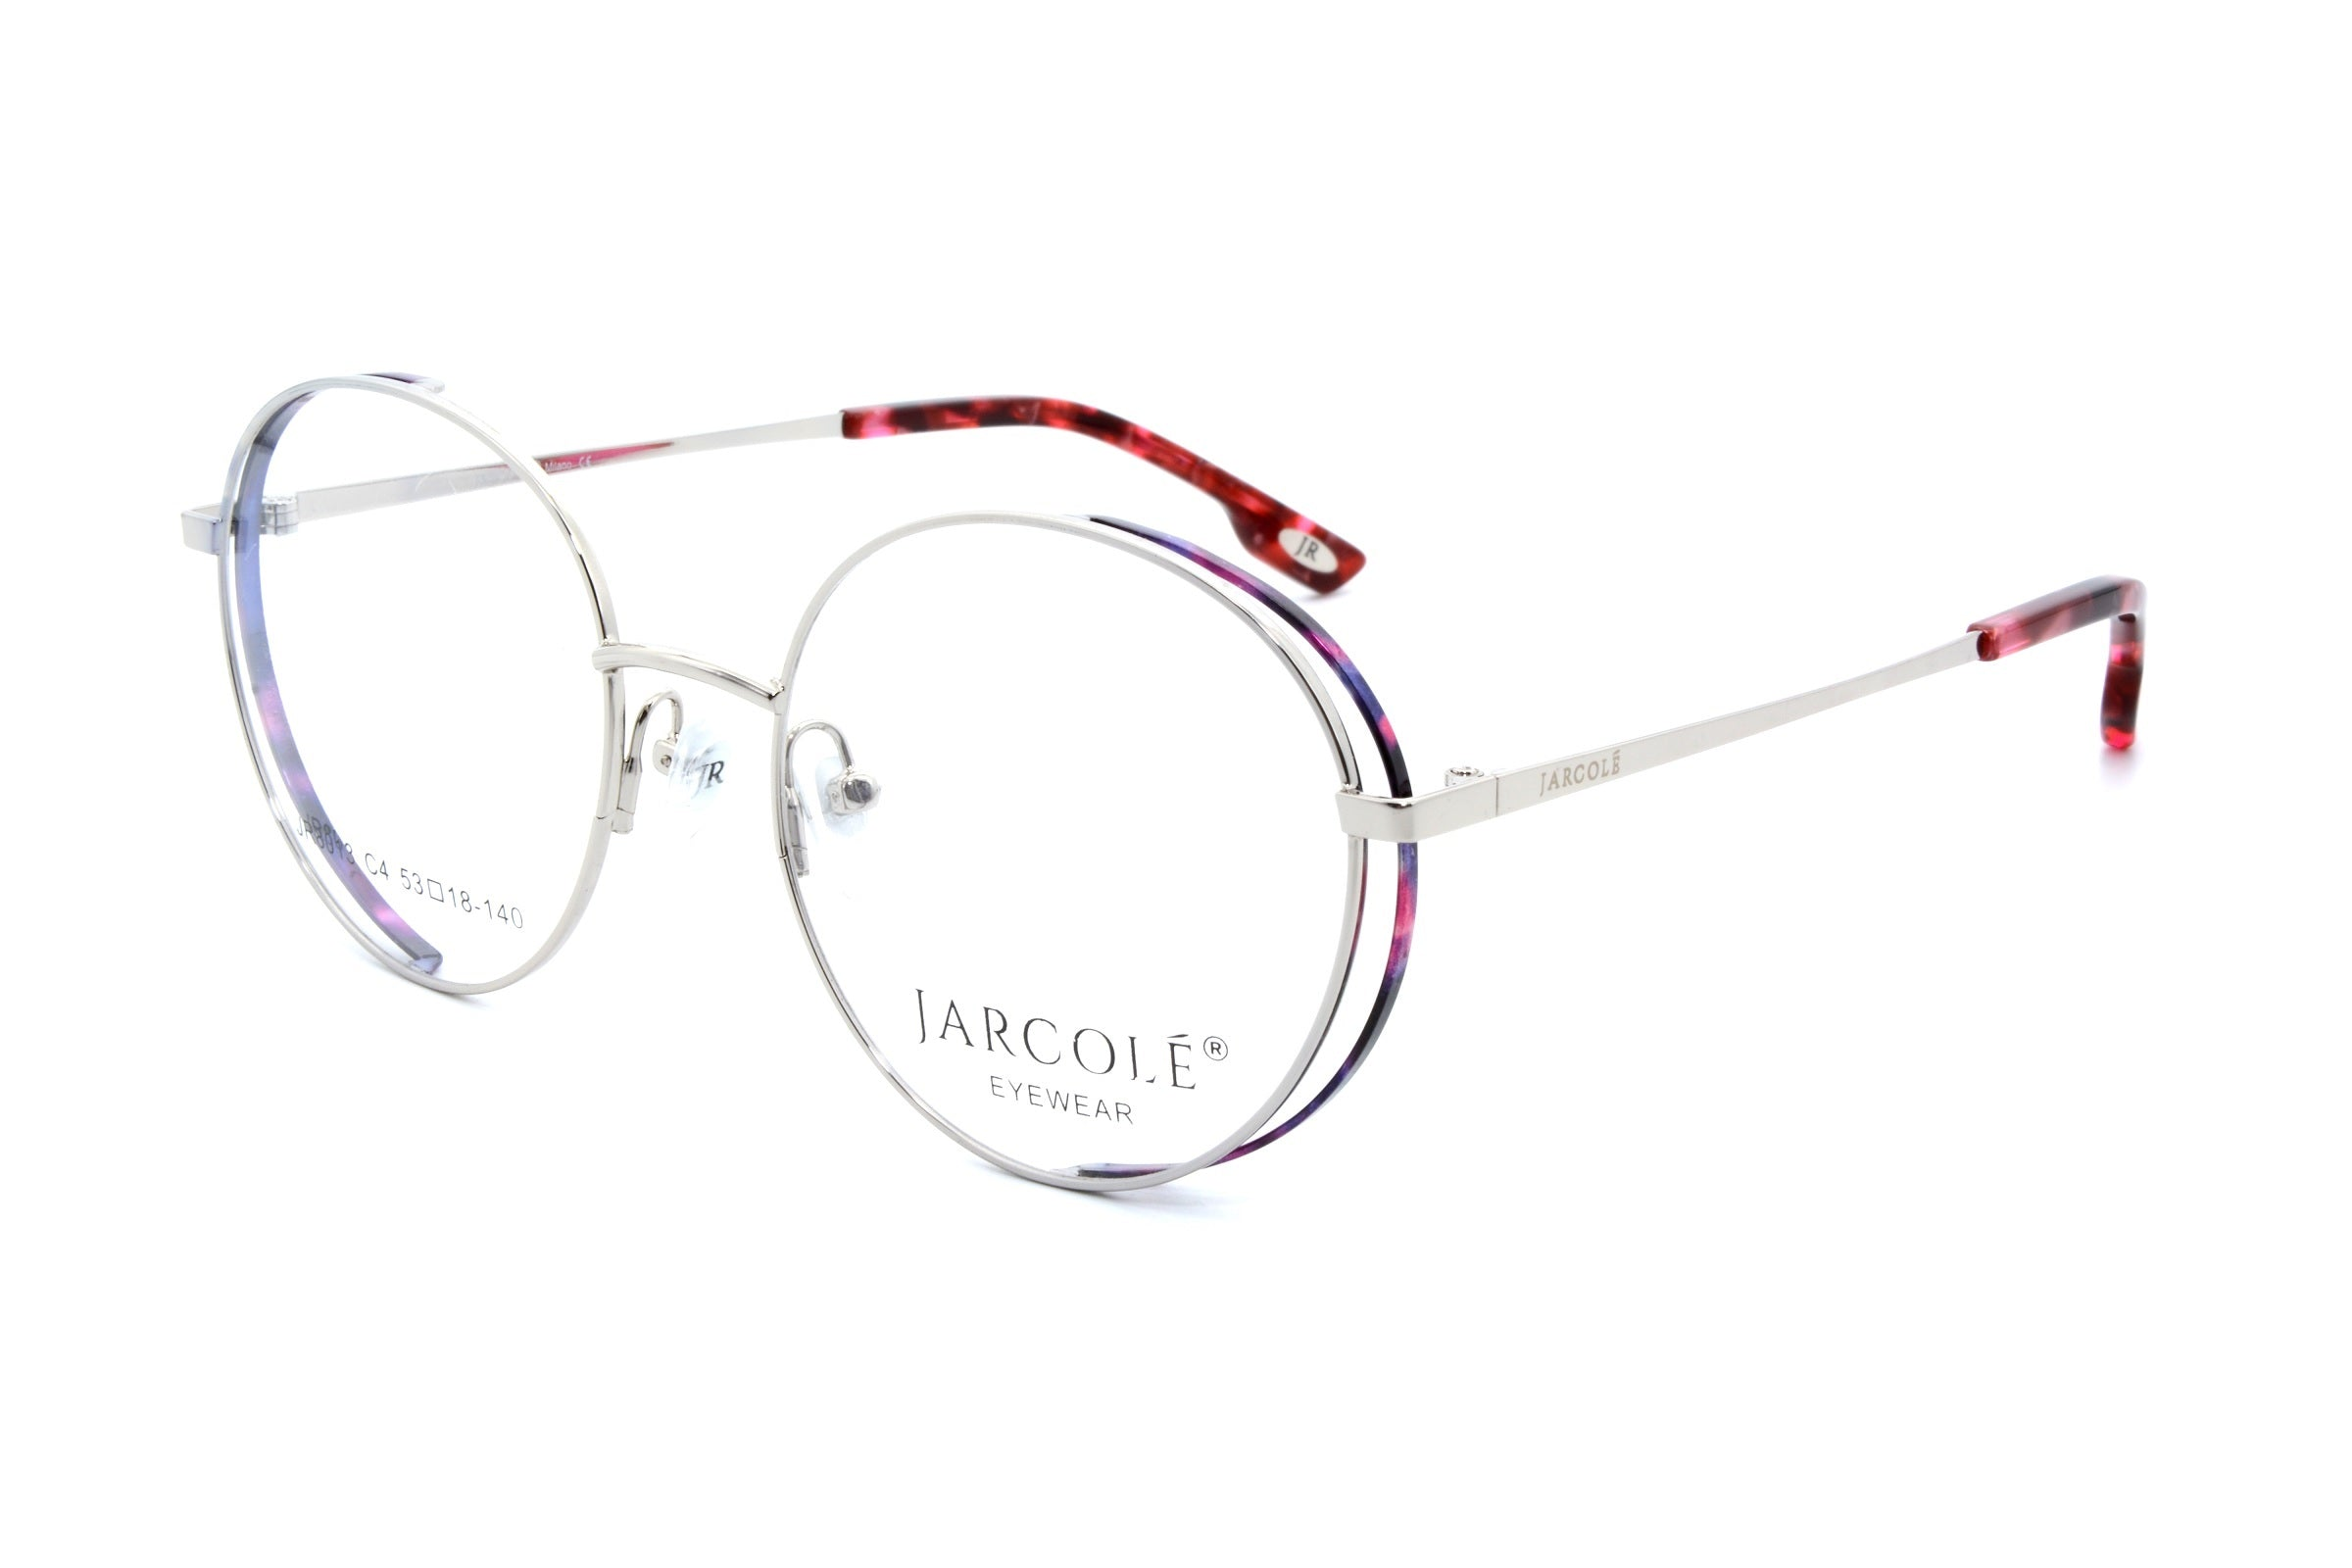 Jarcole eyewear 8013, C4 - Optics Trading